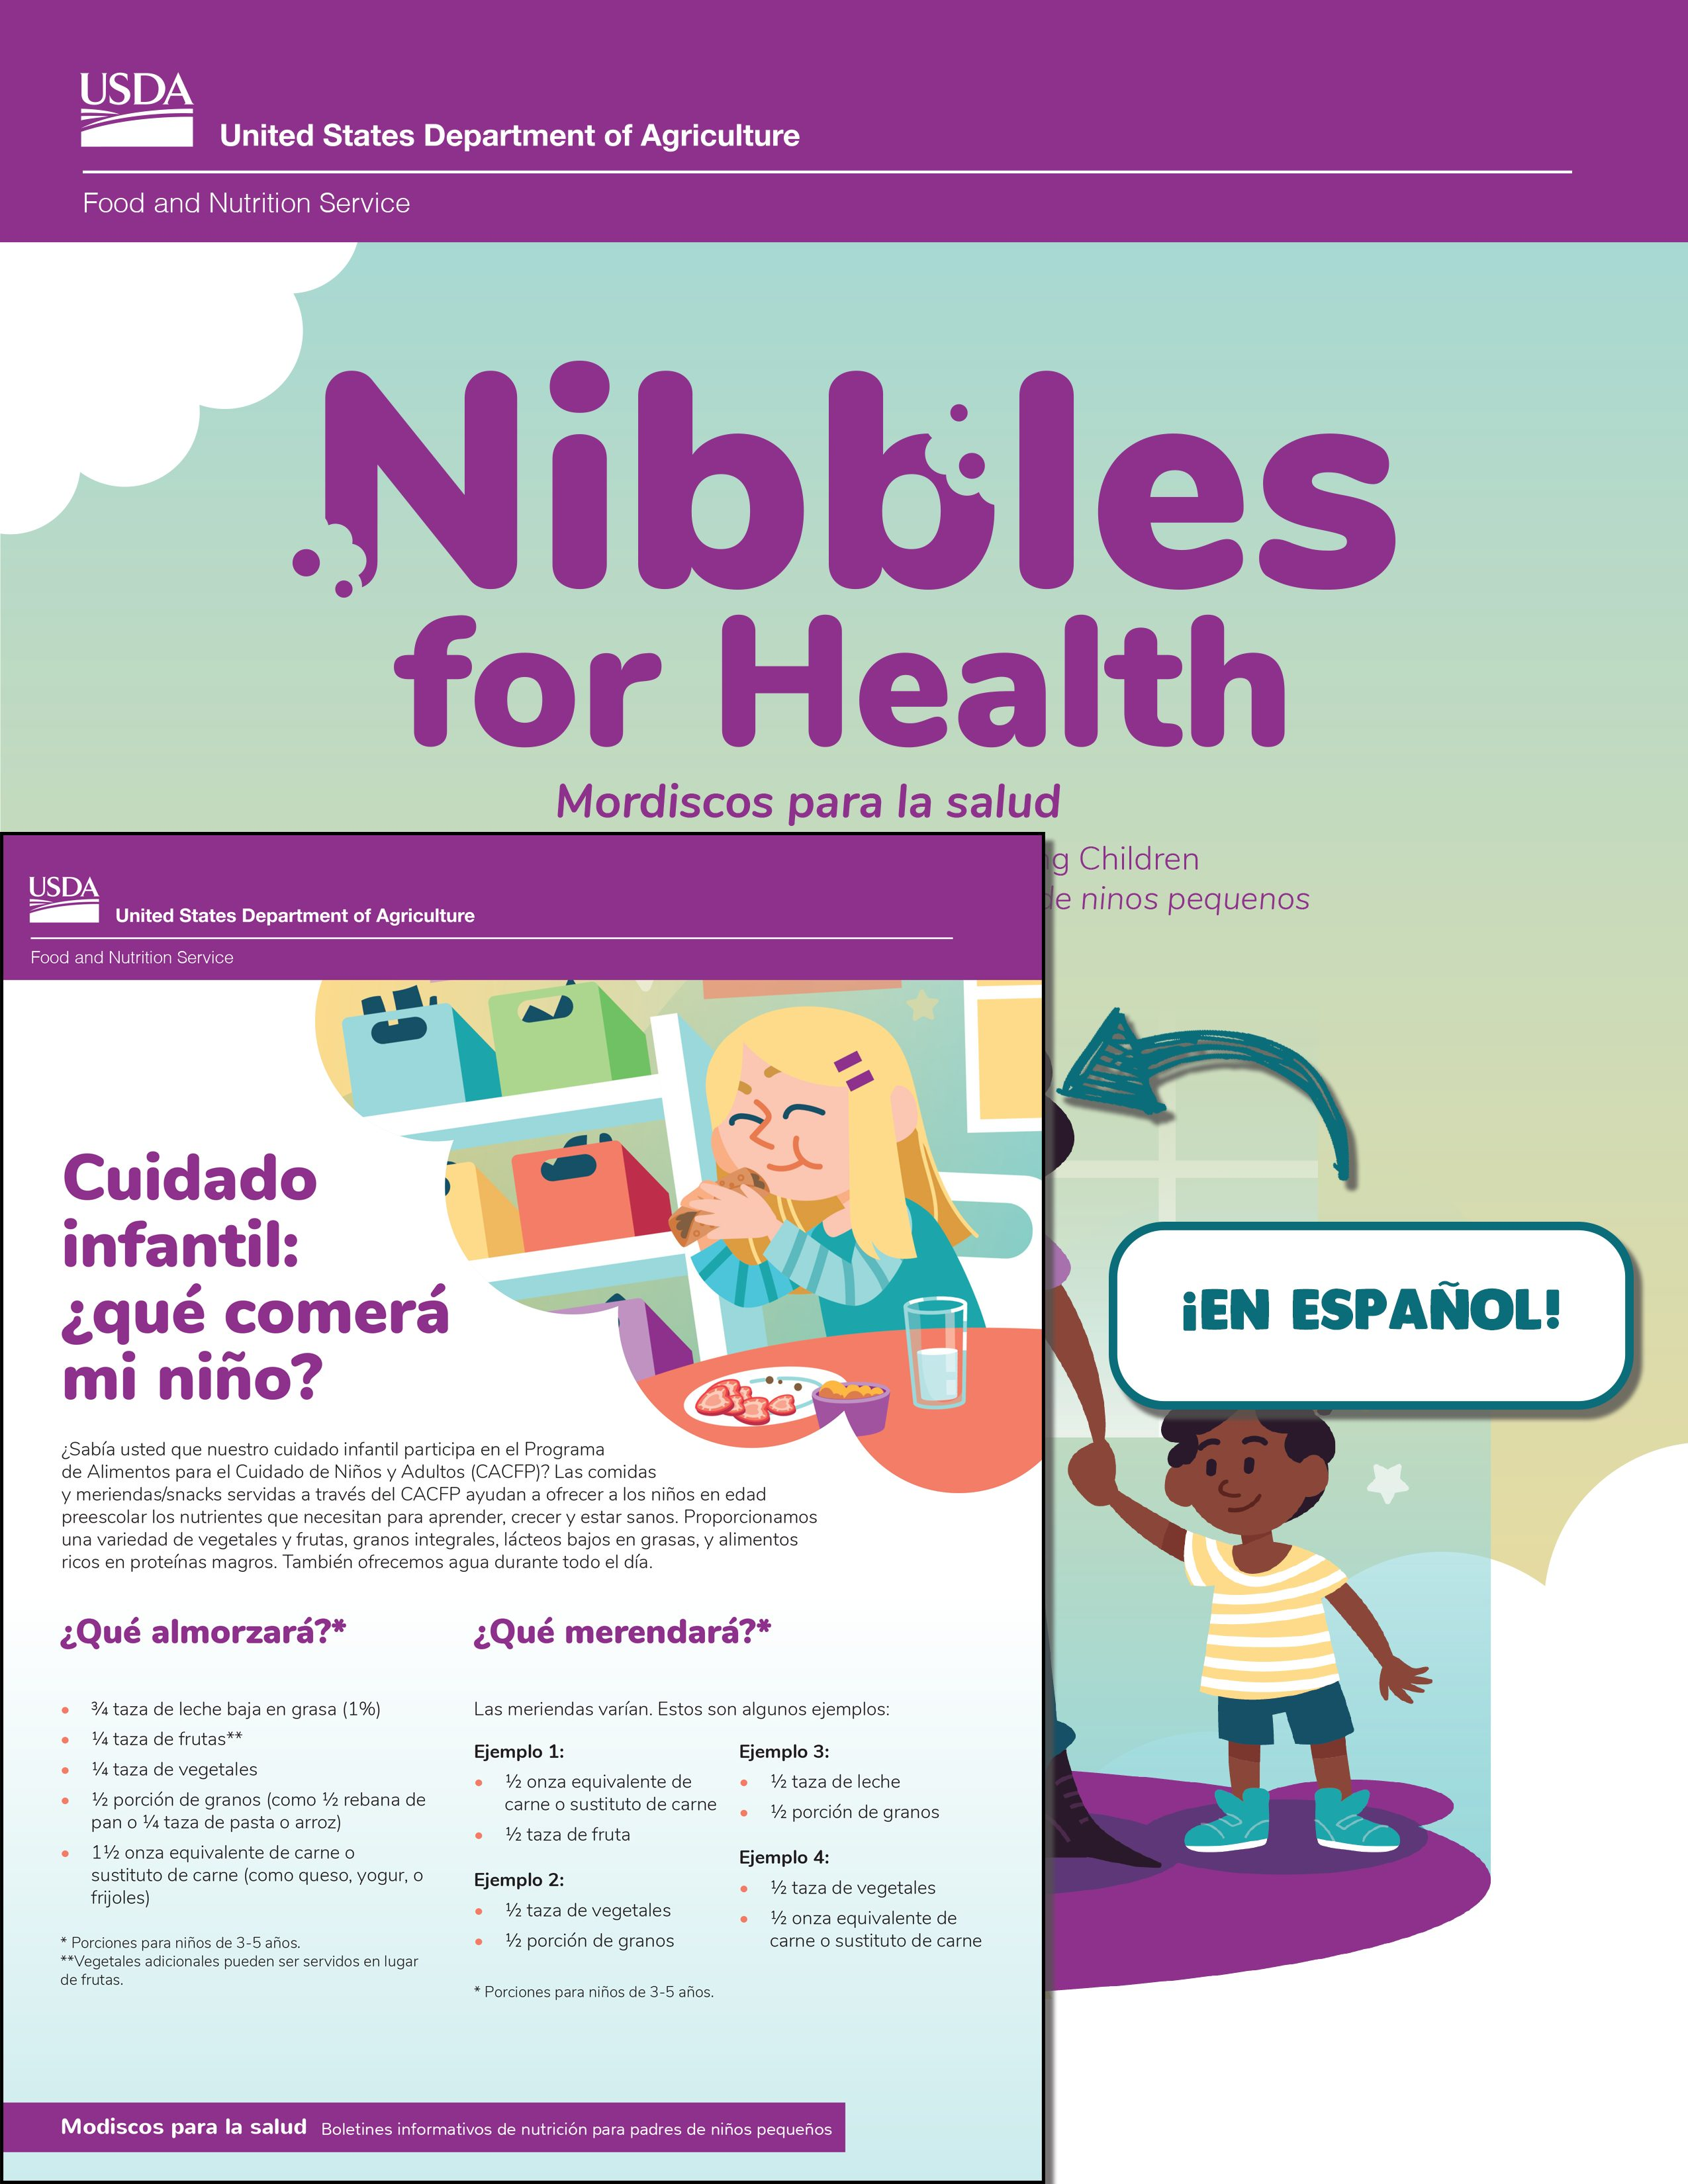 Nibbles for health